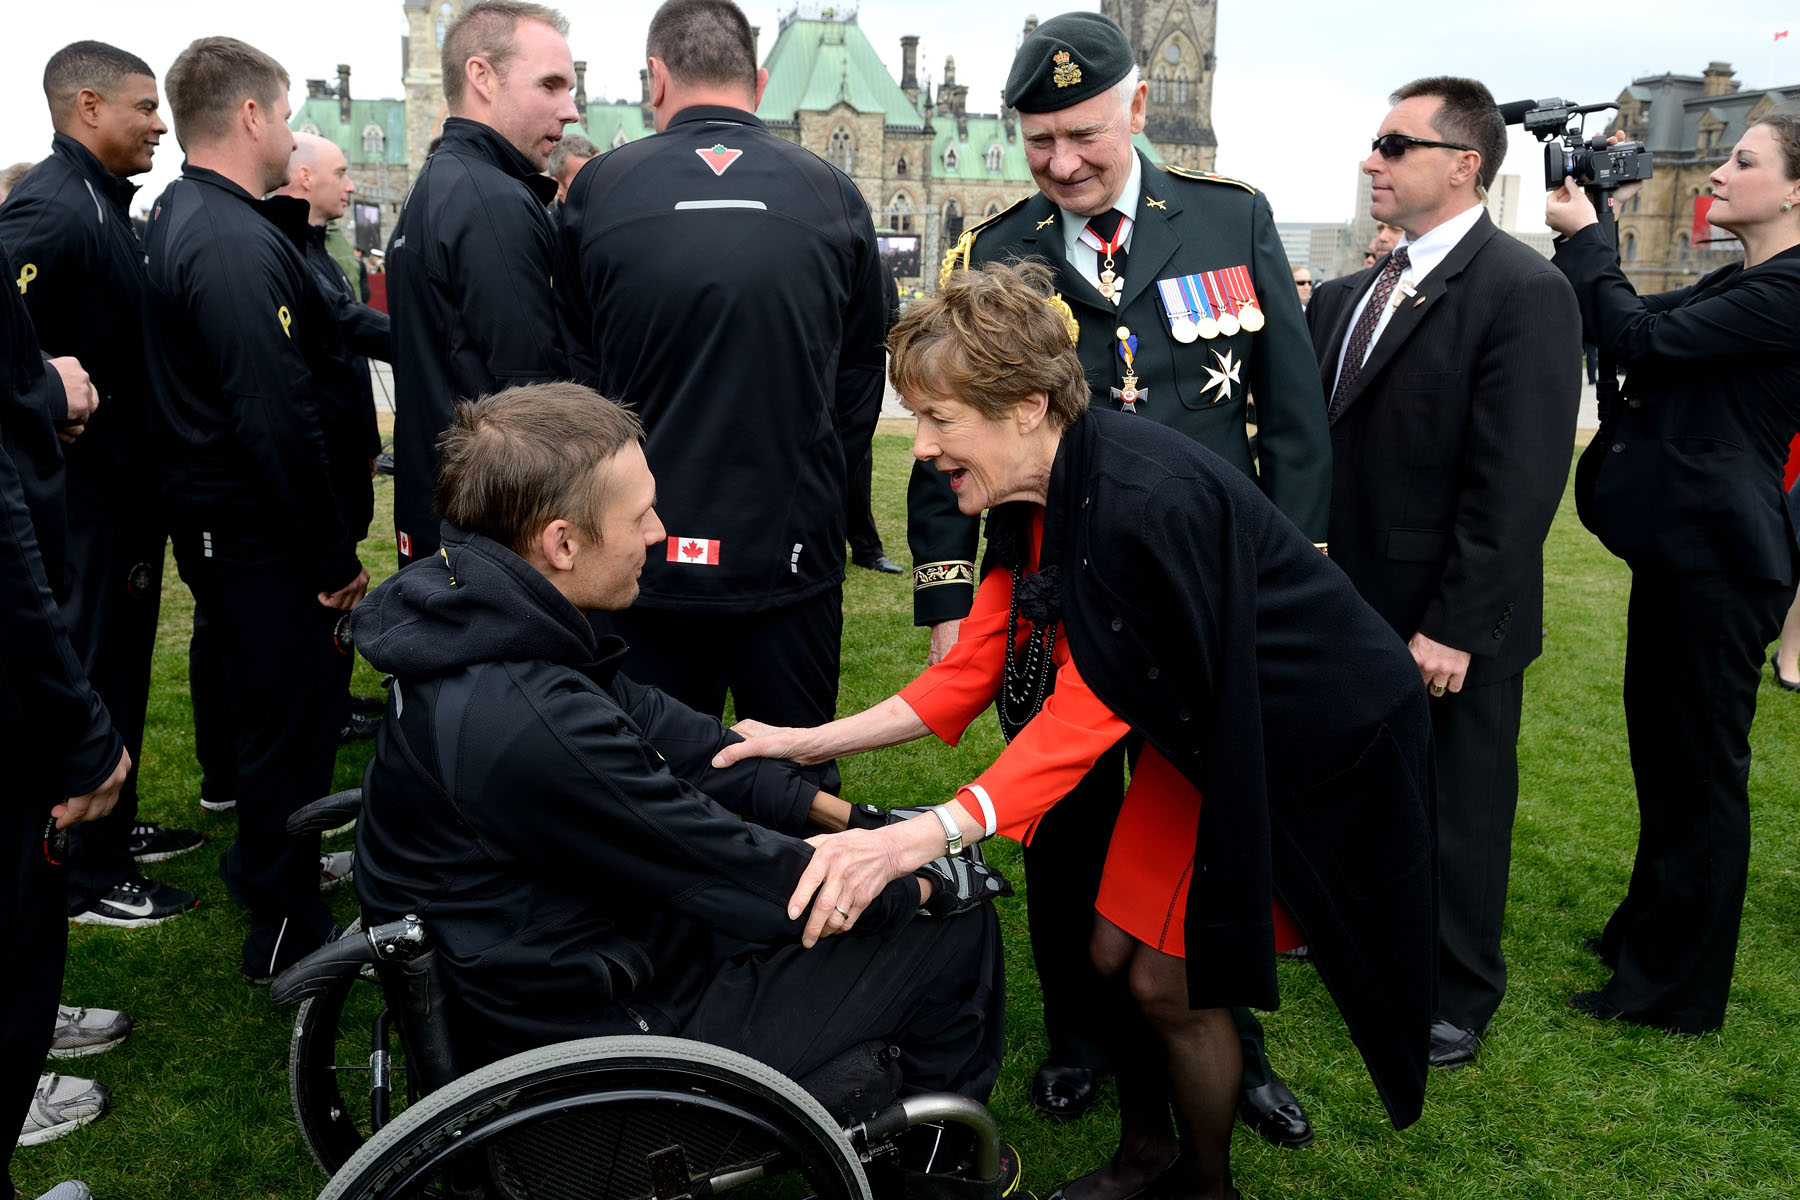 It was also an opportunity to thank family members, friends and all Canadians for their tremendous support. Finally, the day recognized the sacrifices made by the families of the fallen.